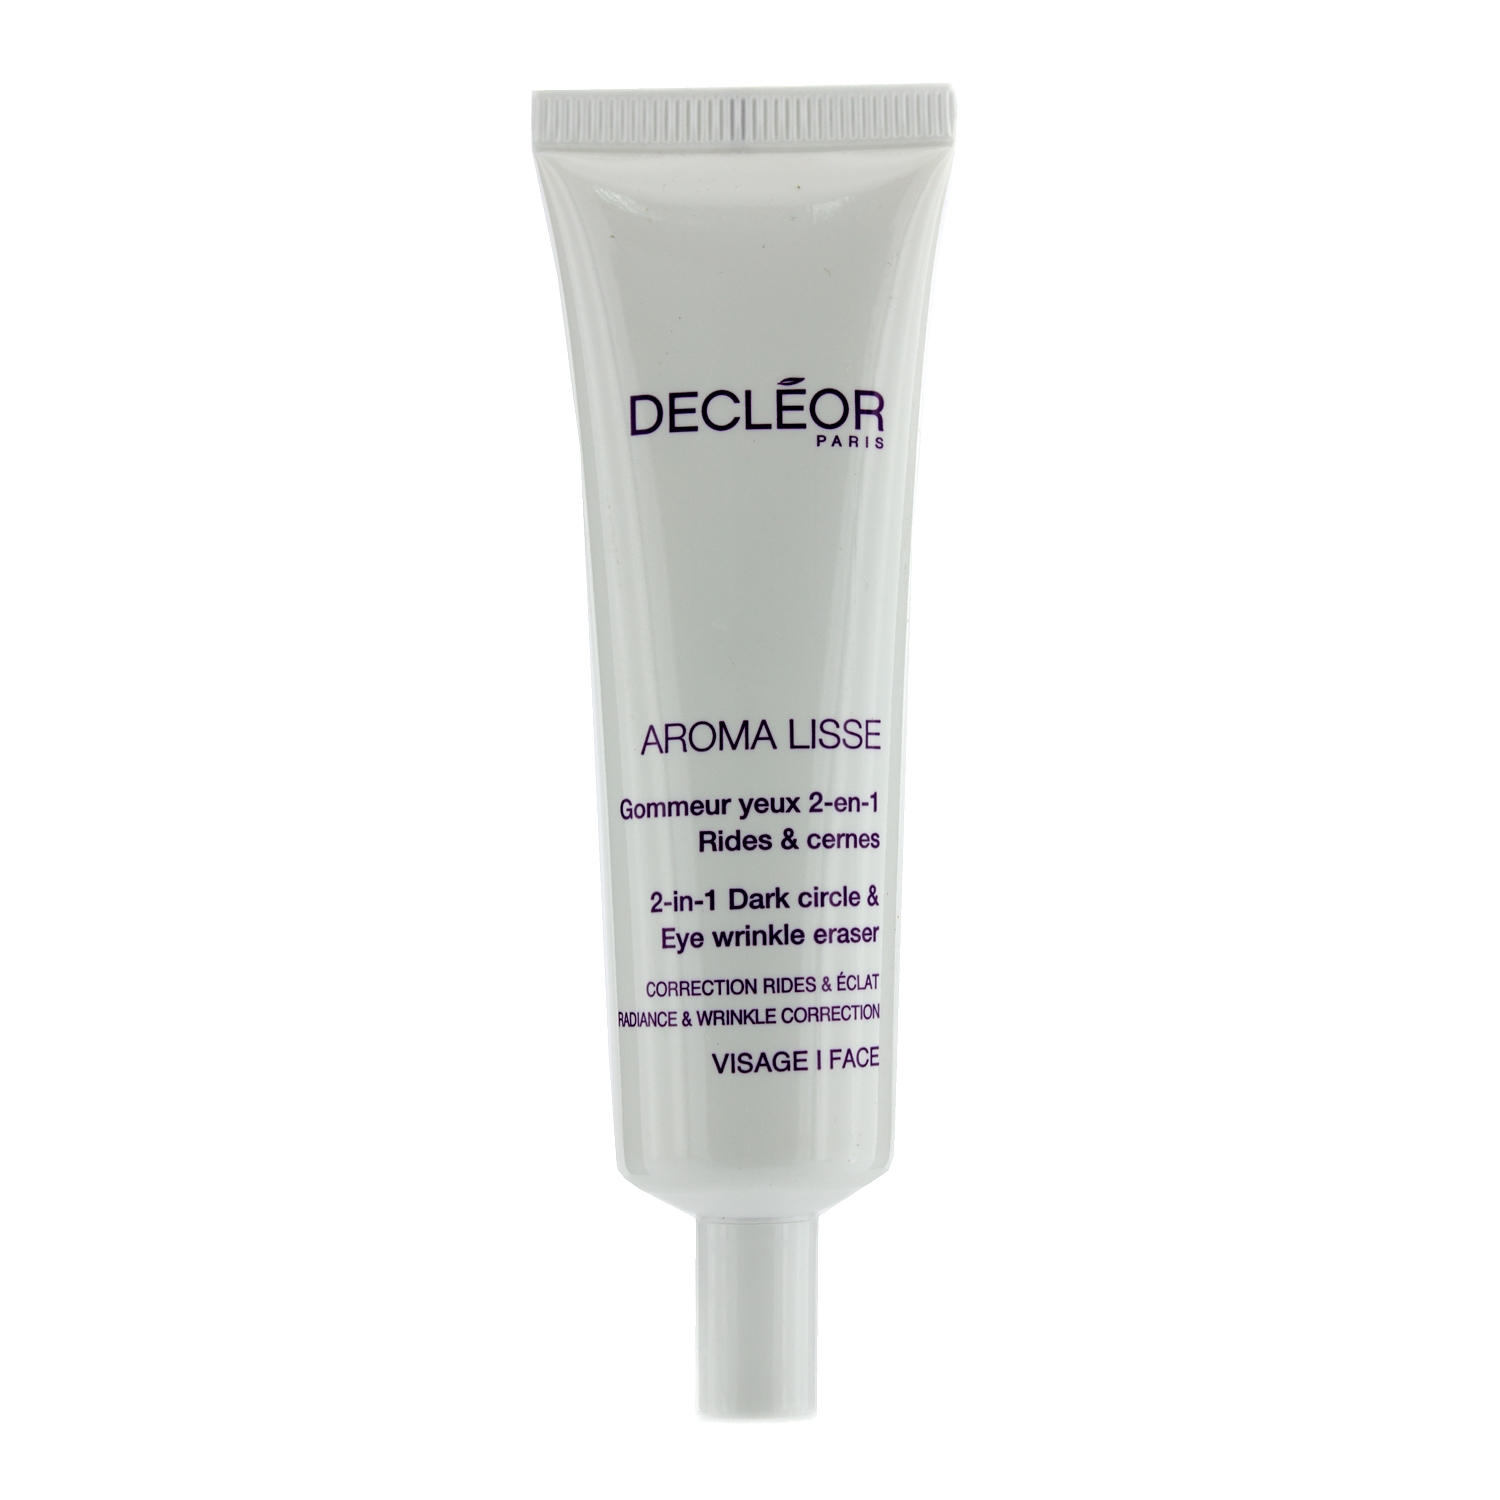 Decleor Aroma Lisse 2-in-1 Dark Circle & Eye Wrinkle Eras...